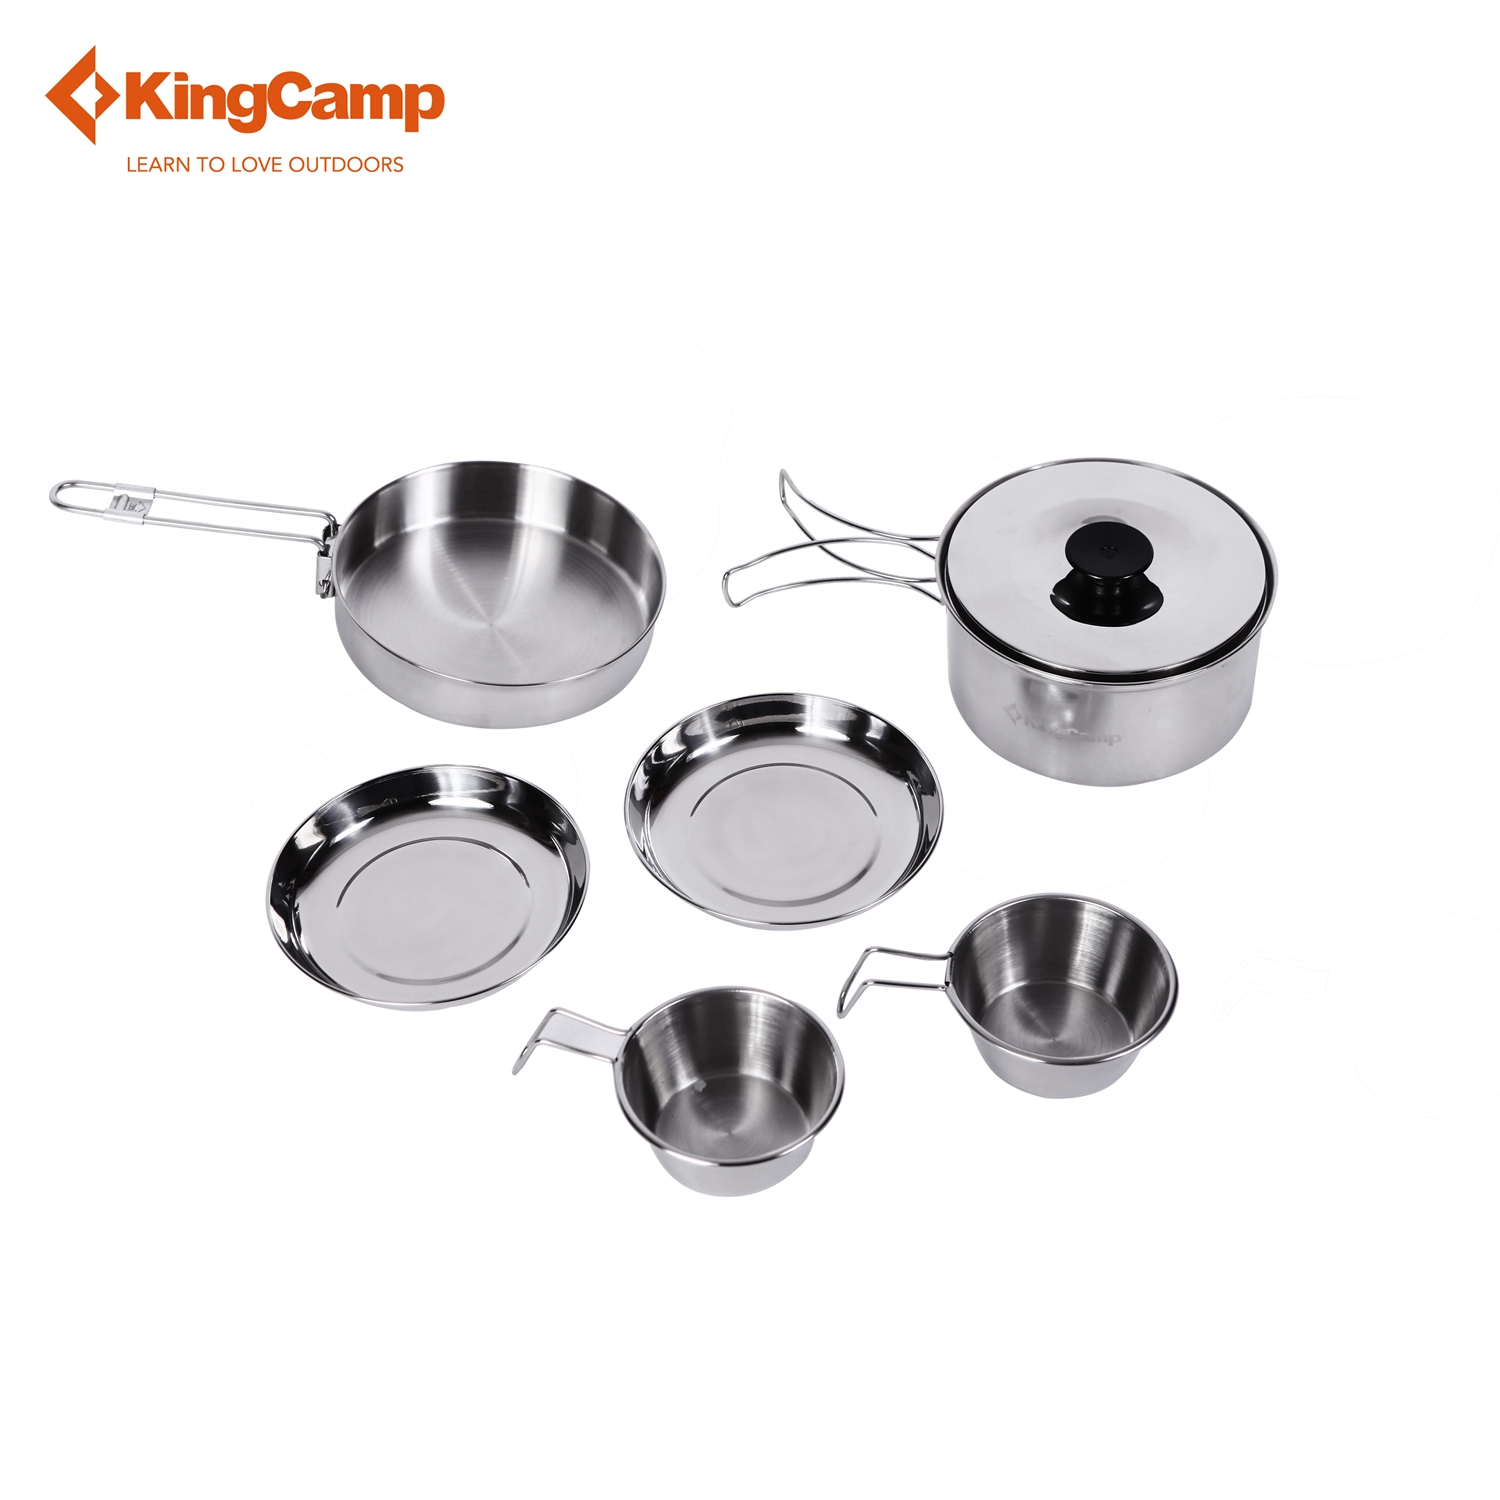 купить KingCamp 7pcs Portable Stainless Steel Cookware Set for Camping Hiking Includes Pot Frypan Plates Bowels Carry Bag Dinner Set недорого